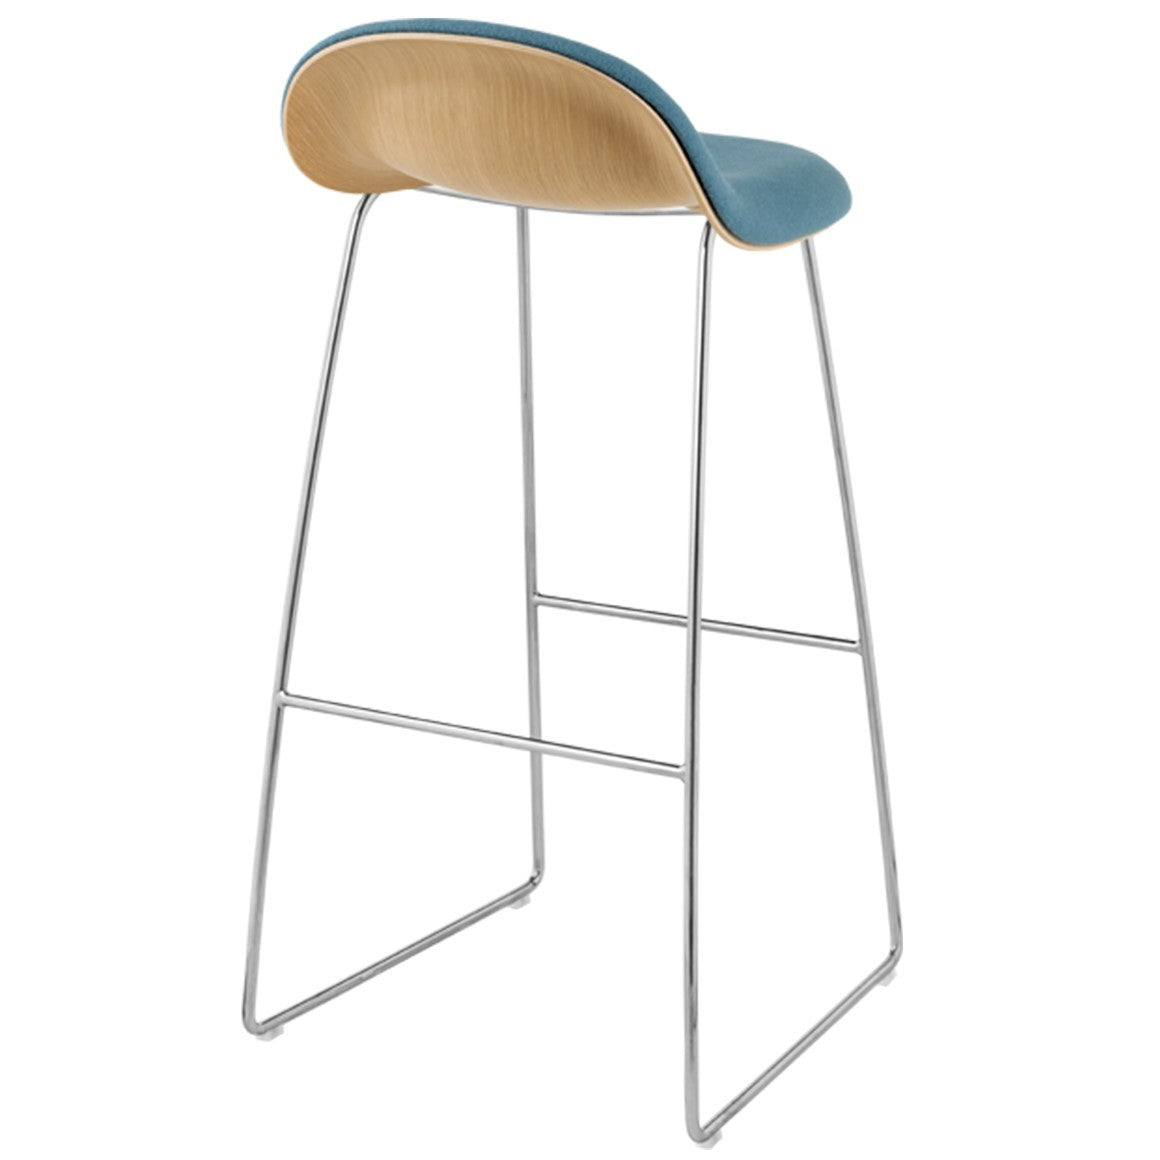 GUBI 3 STOOL-CHROME BASE - Eclectic Cool  - 12